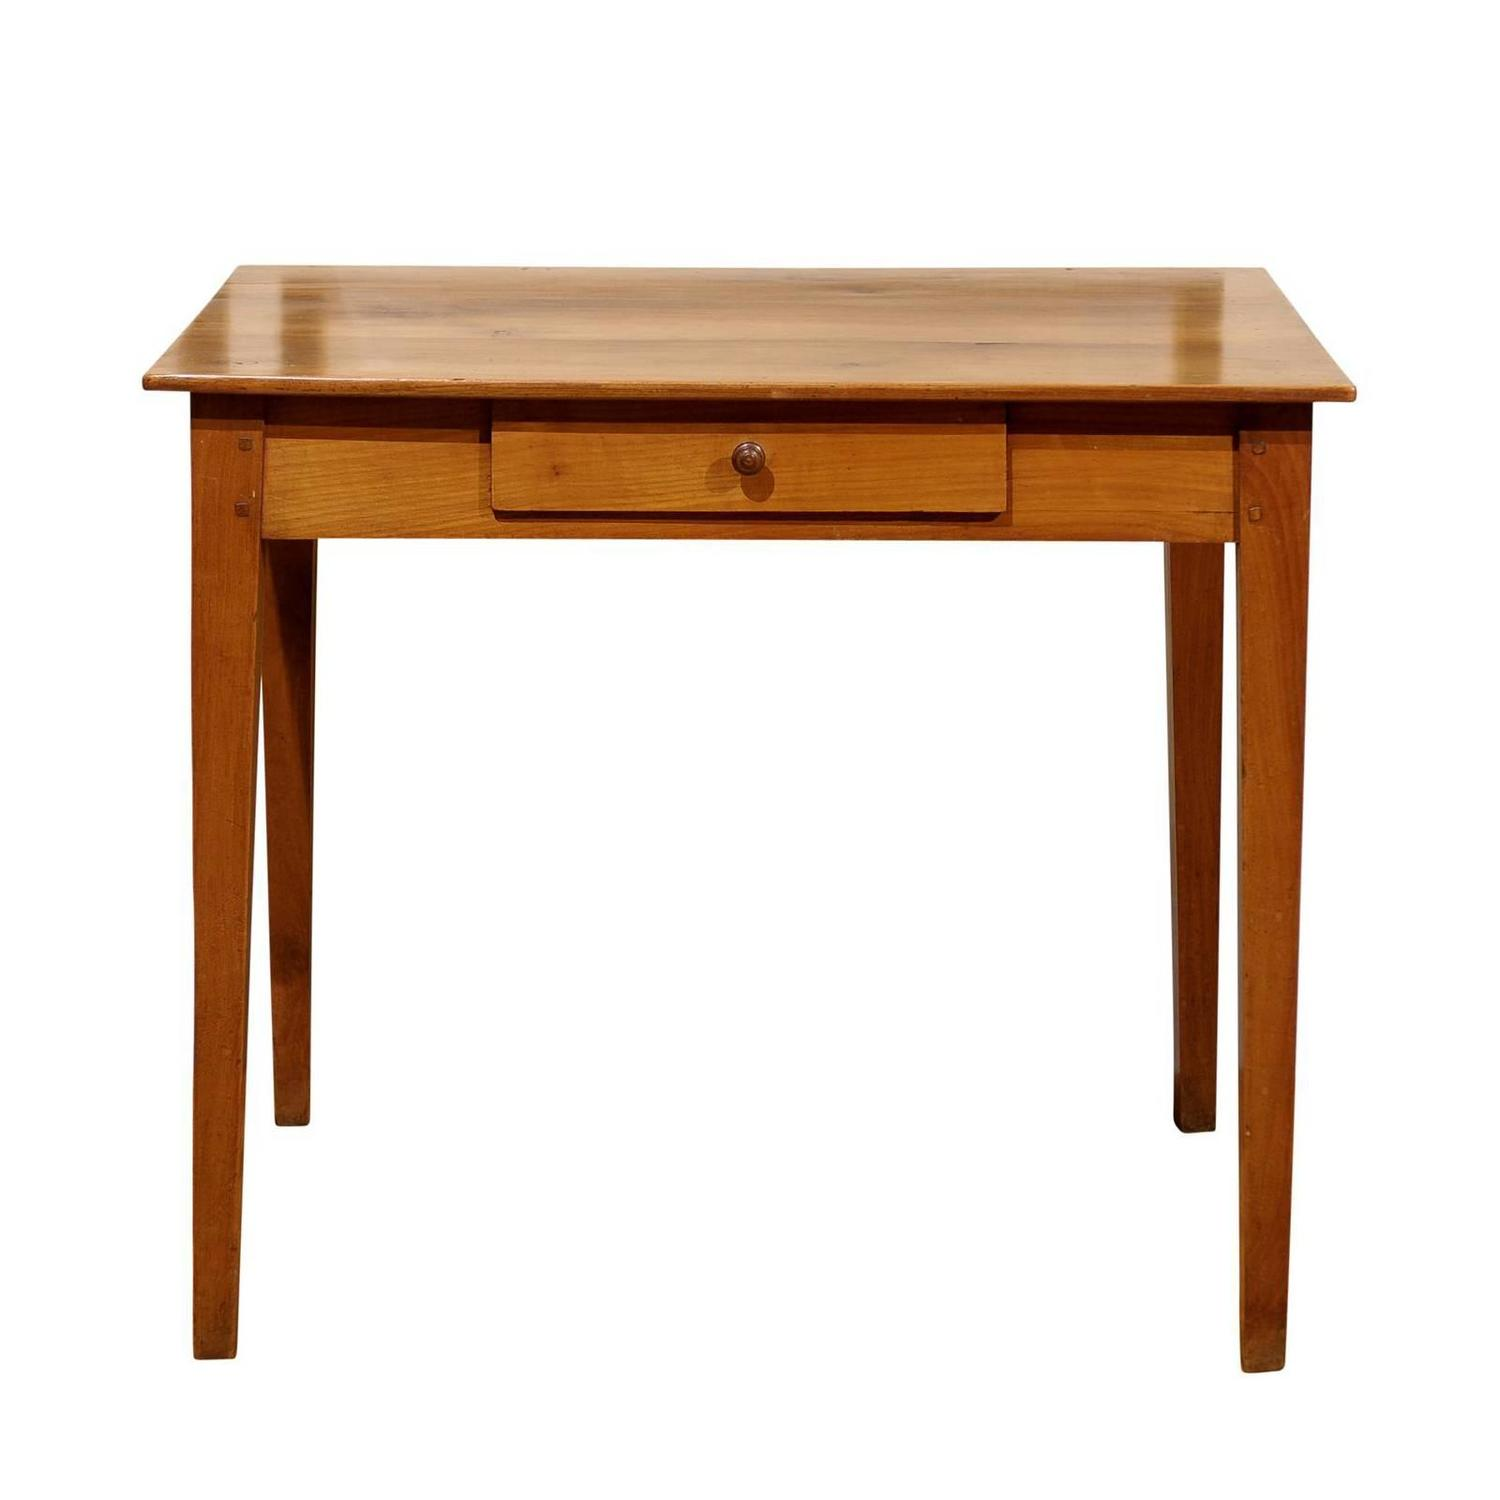 French cherry side table with drawer circa 1880 at 1stdibs for Cherry side table